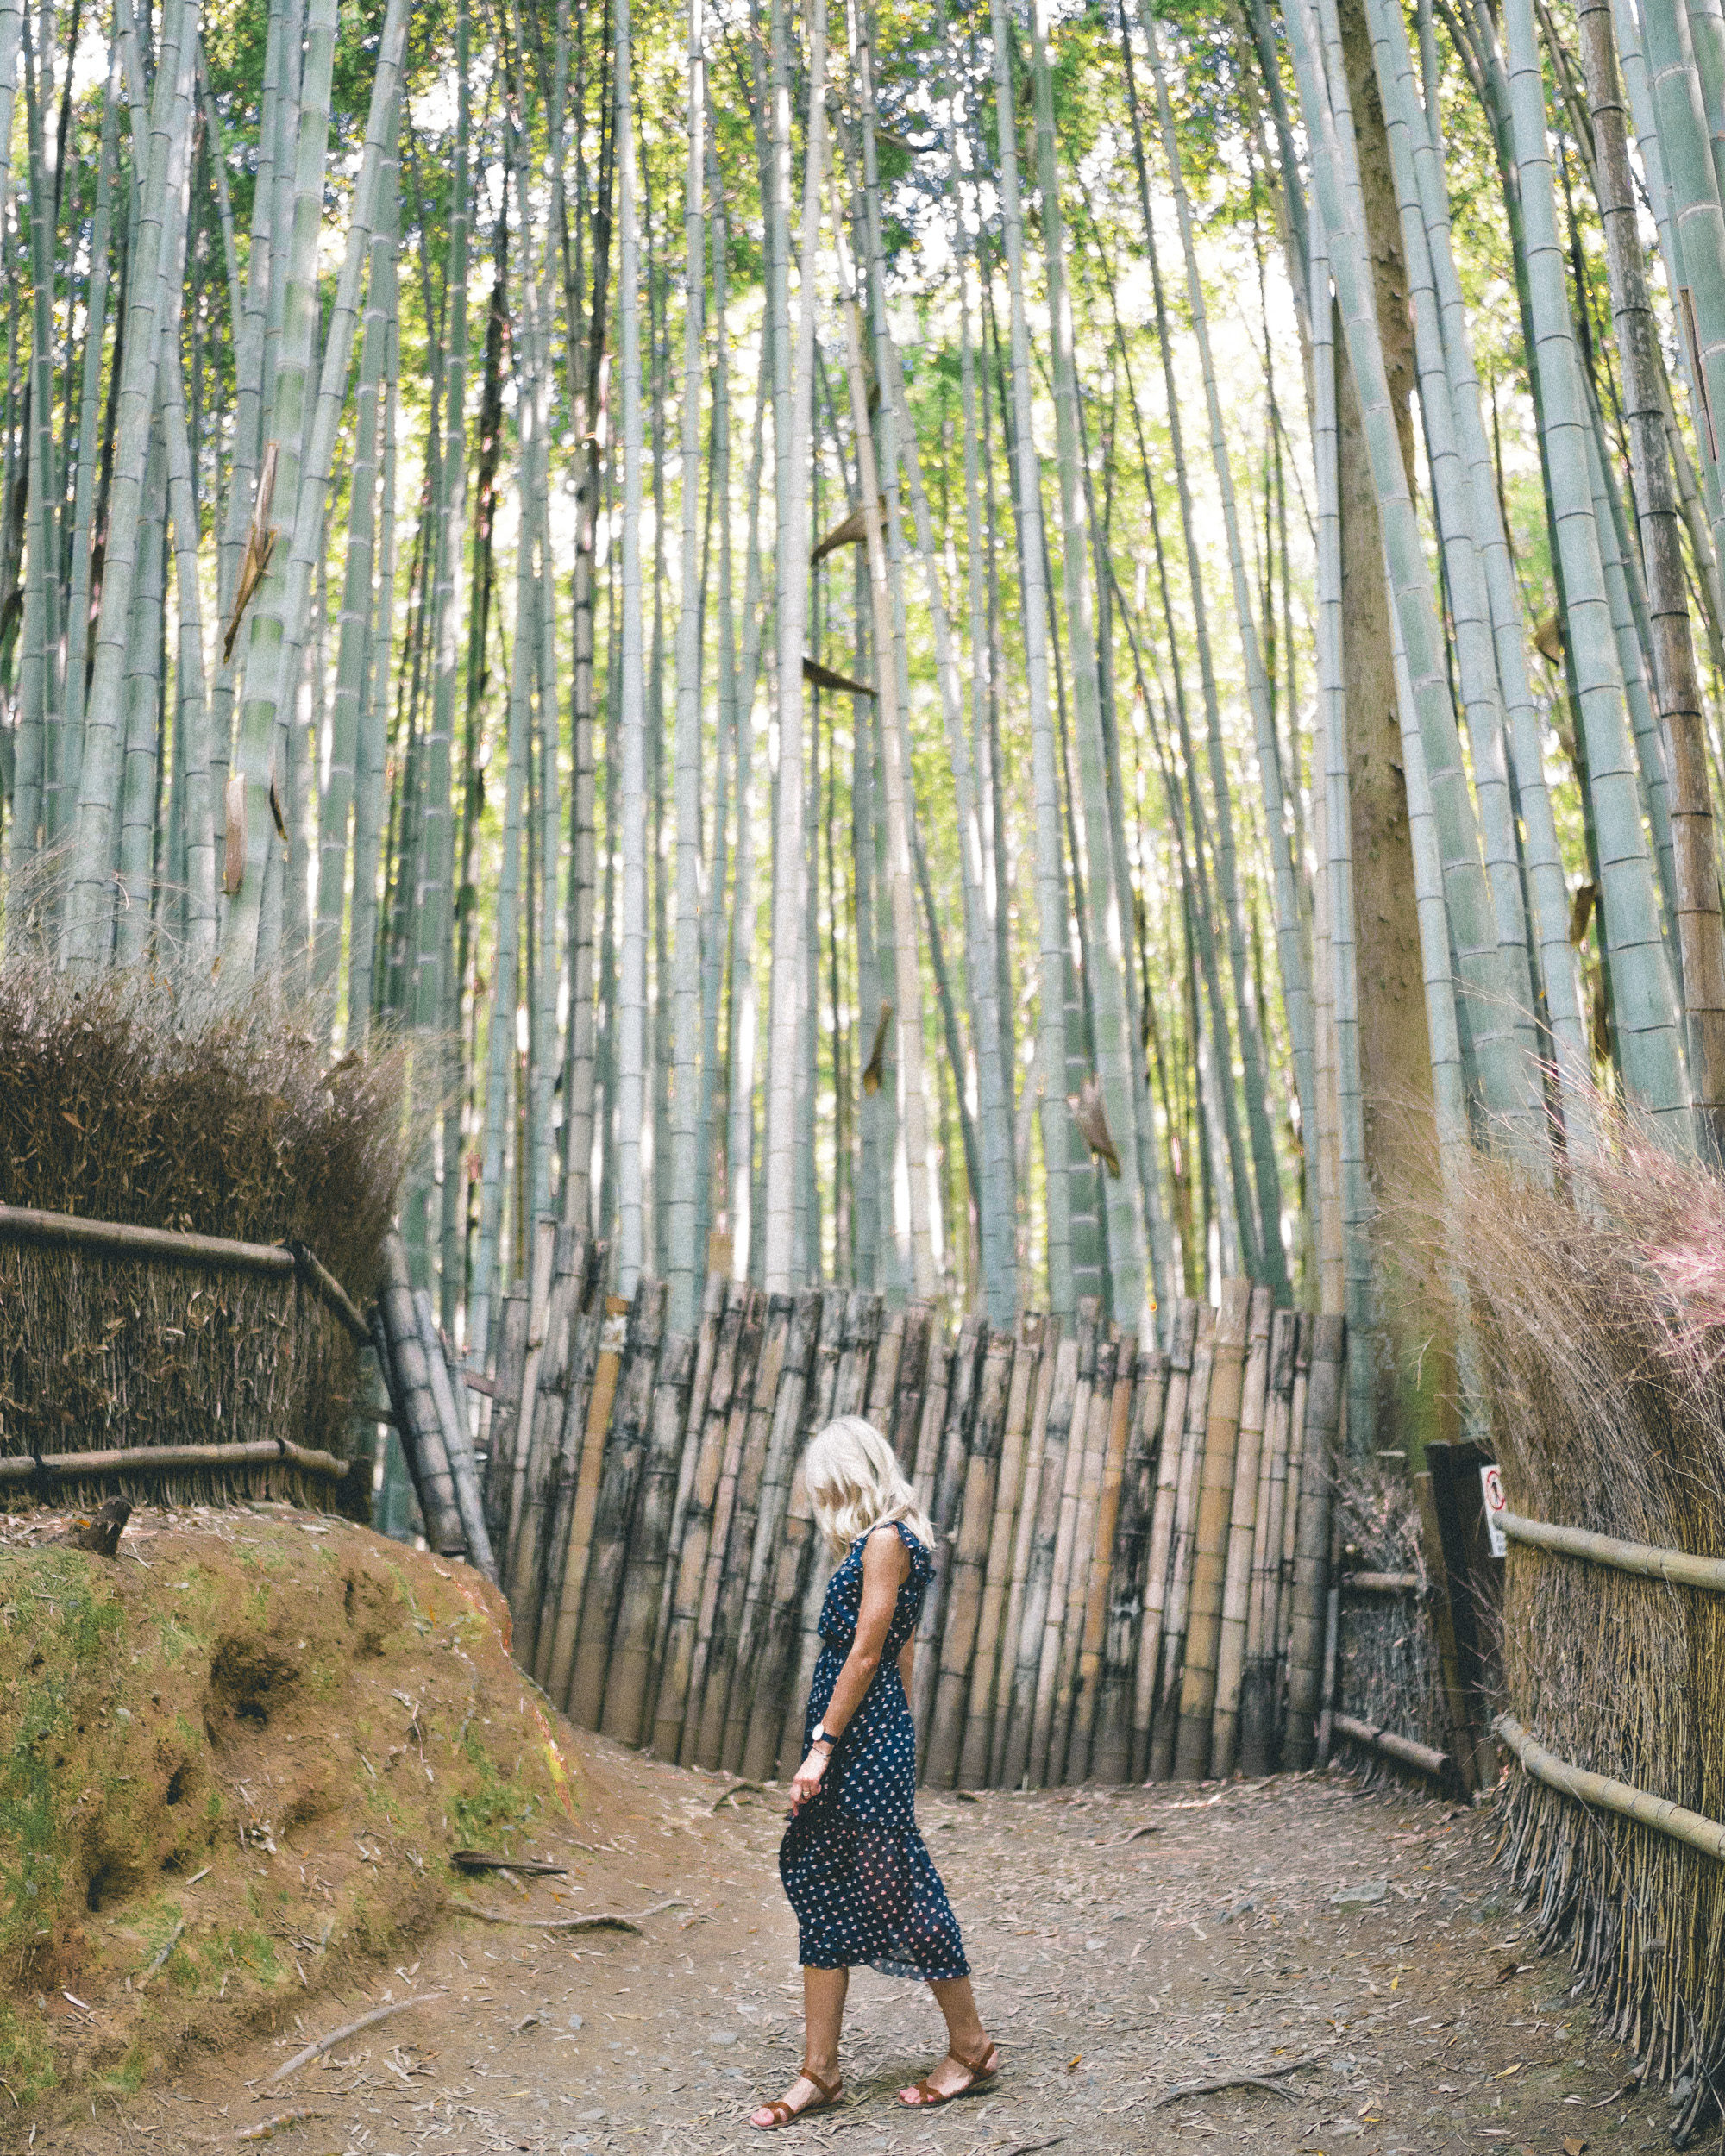 Arashiyama Bamboo Grove in Kyoto, Japan | 24 Hour Guide to Kyoto, Japan | 1 Day Guide Kyoto | Kyoto City Guide | Kyoto Travel Itinerary